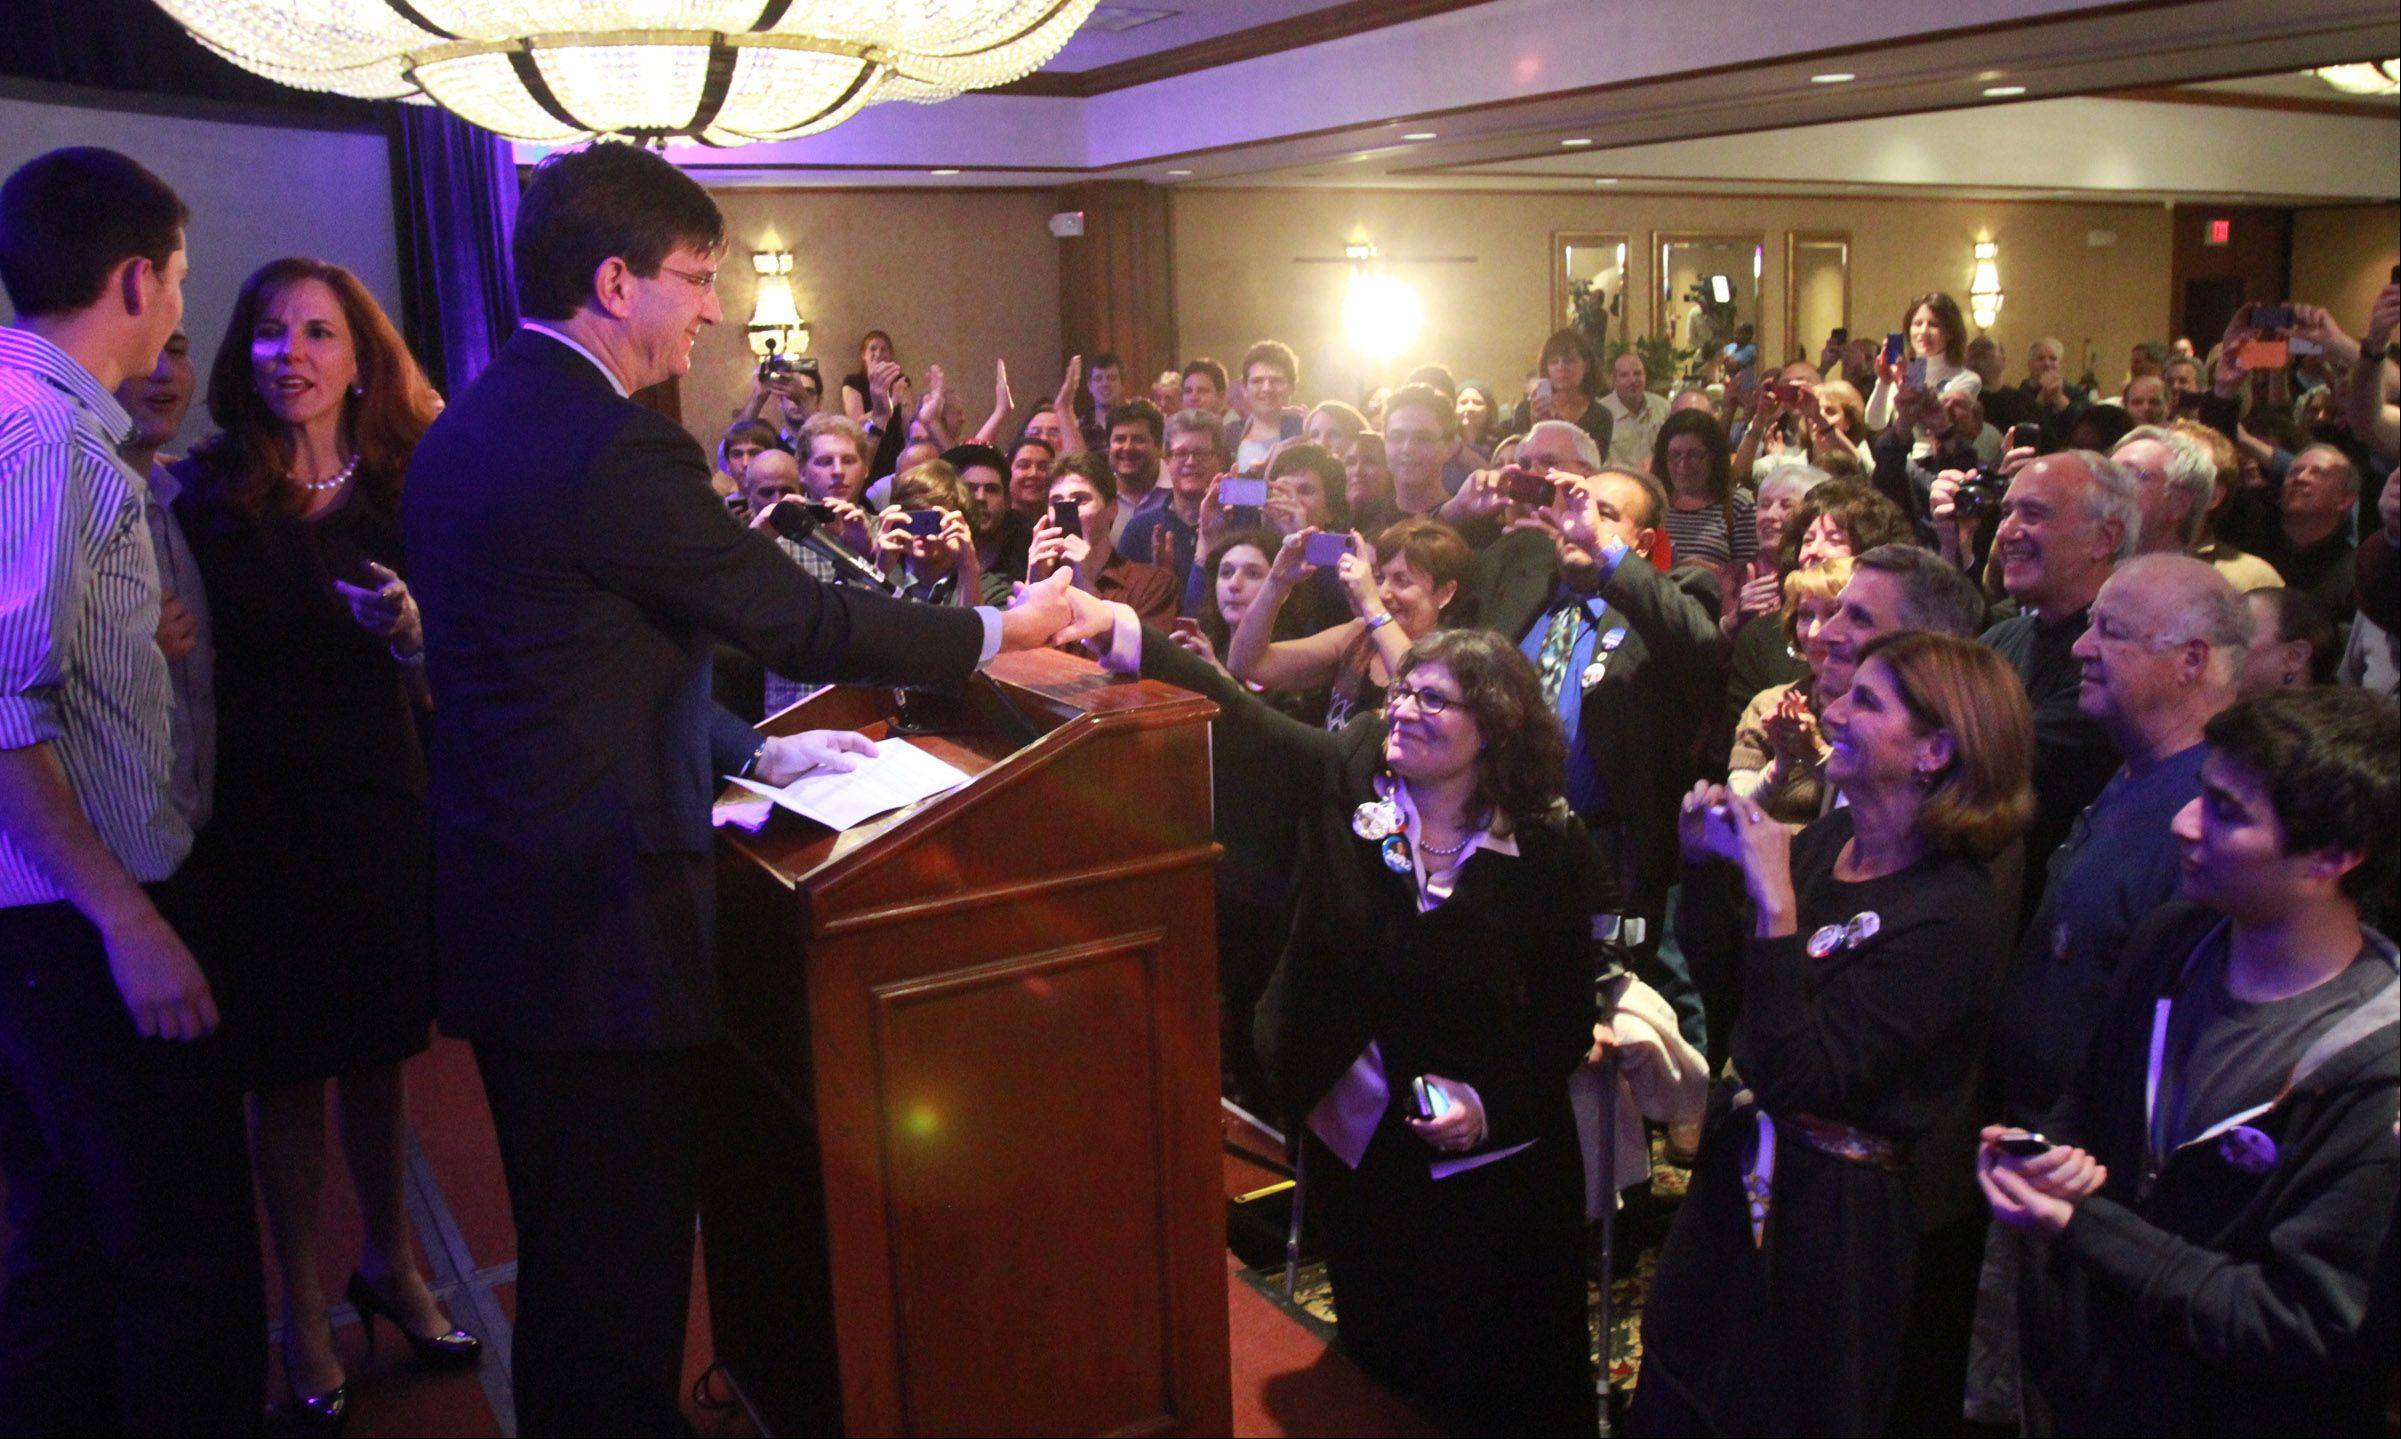 Brad Schneider with his wife, Julie Dann, and sons Adam and Daniel Schneider next to him Tuesday, speaks to supporters after winning the Illinois's 10th Congressional race.